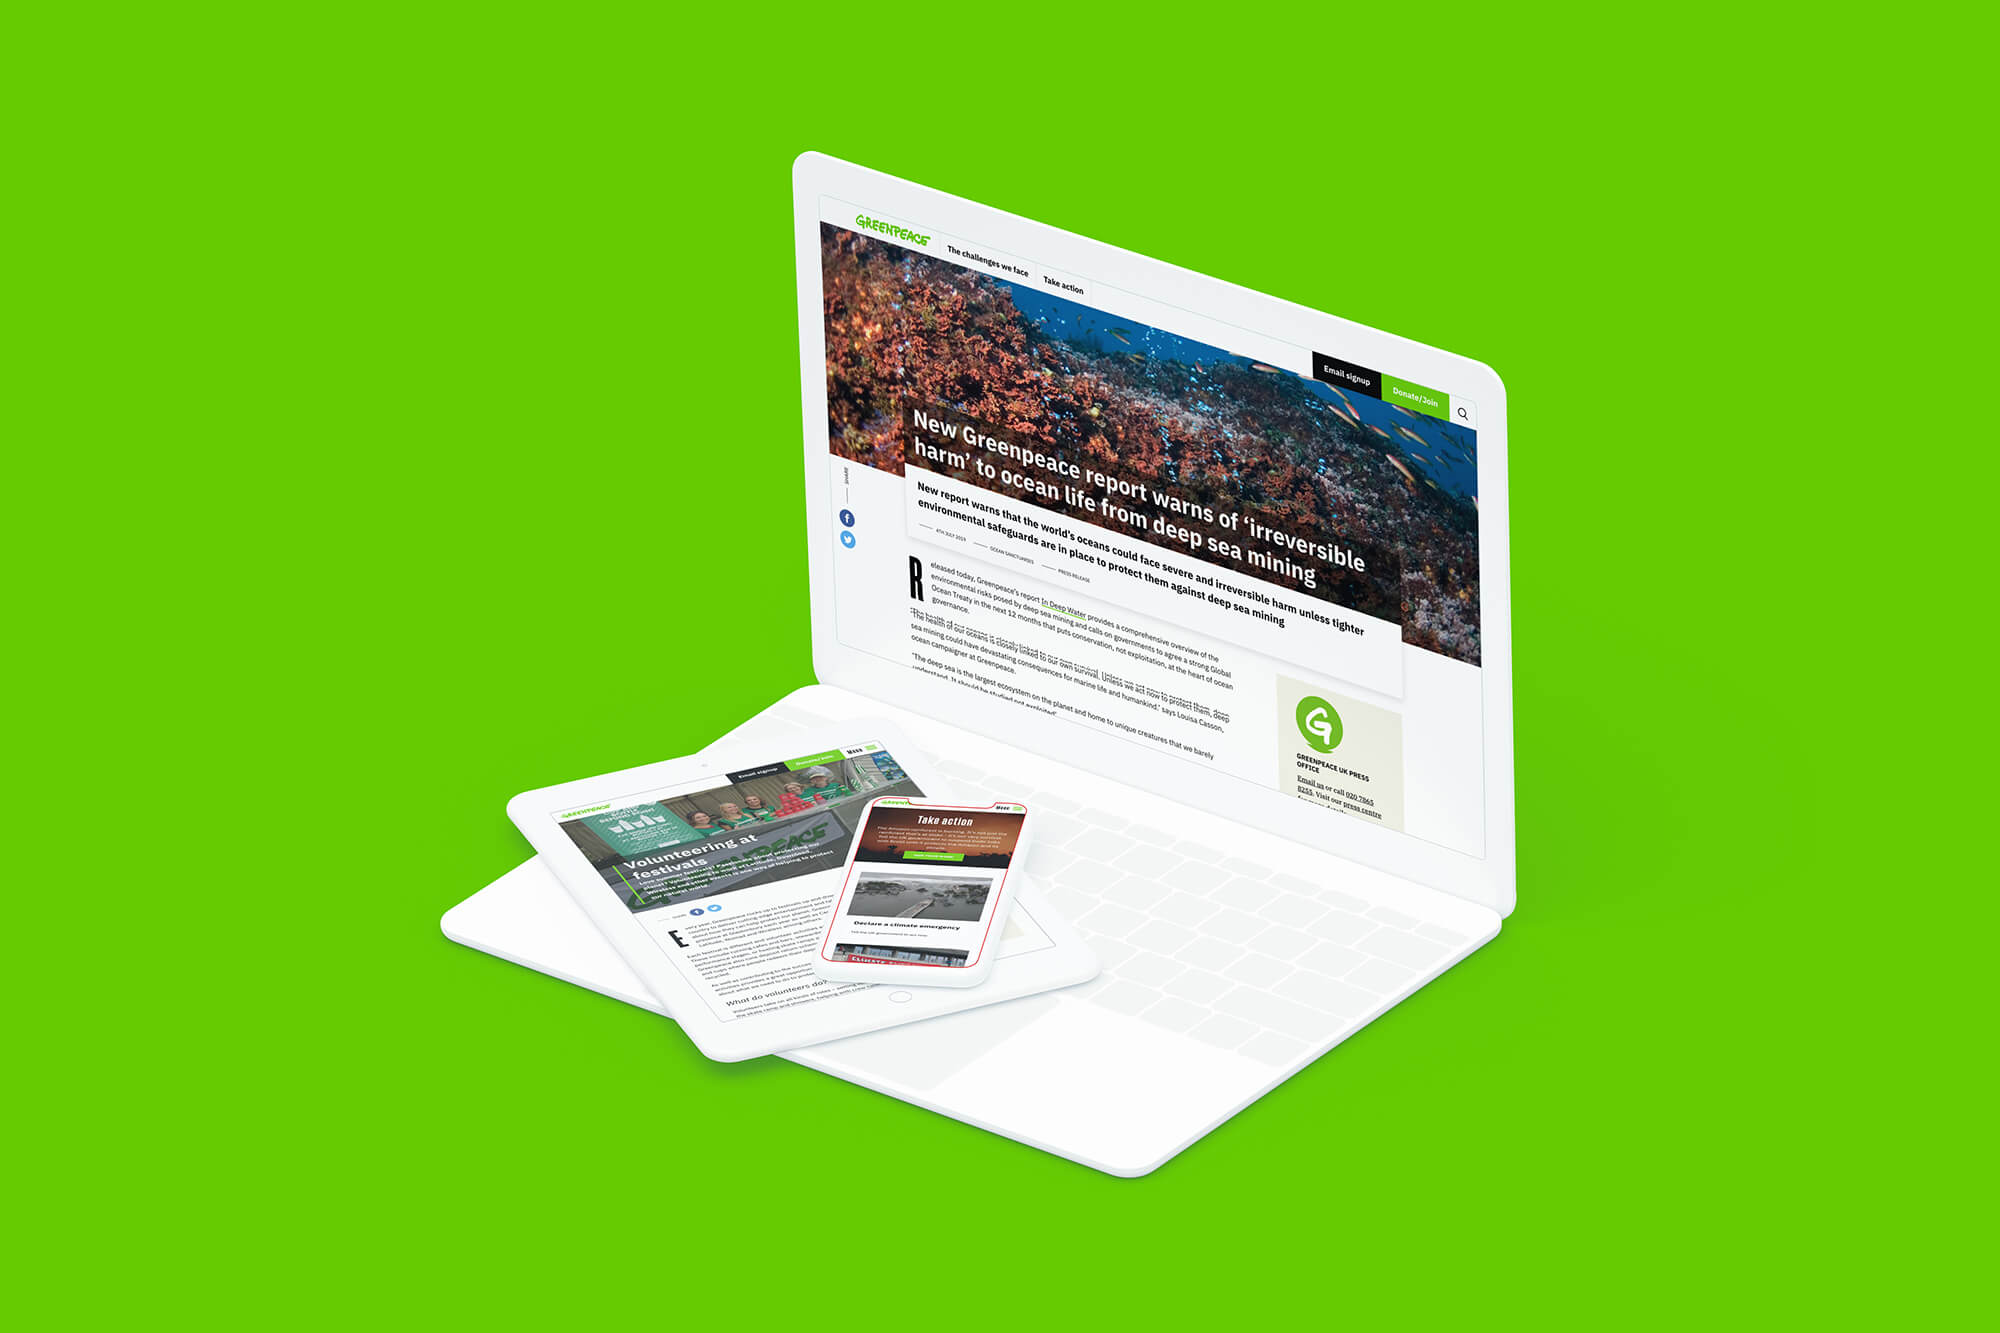 Greenpeace's site on a laptop with mobile and tablet on the keyboard